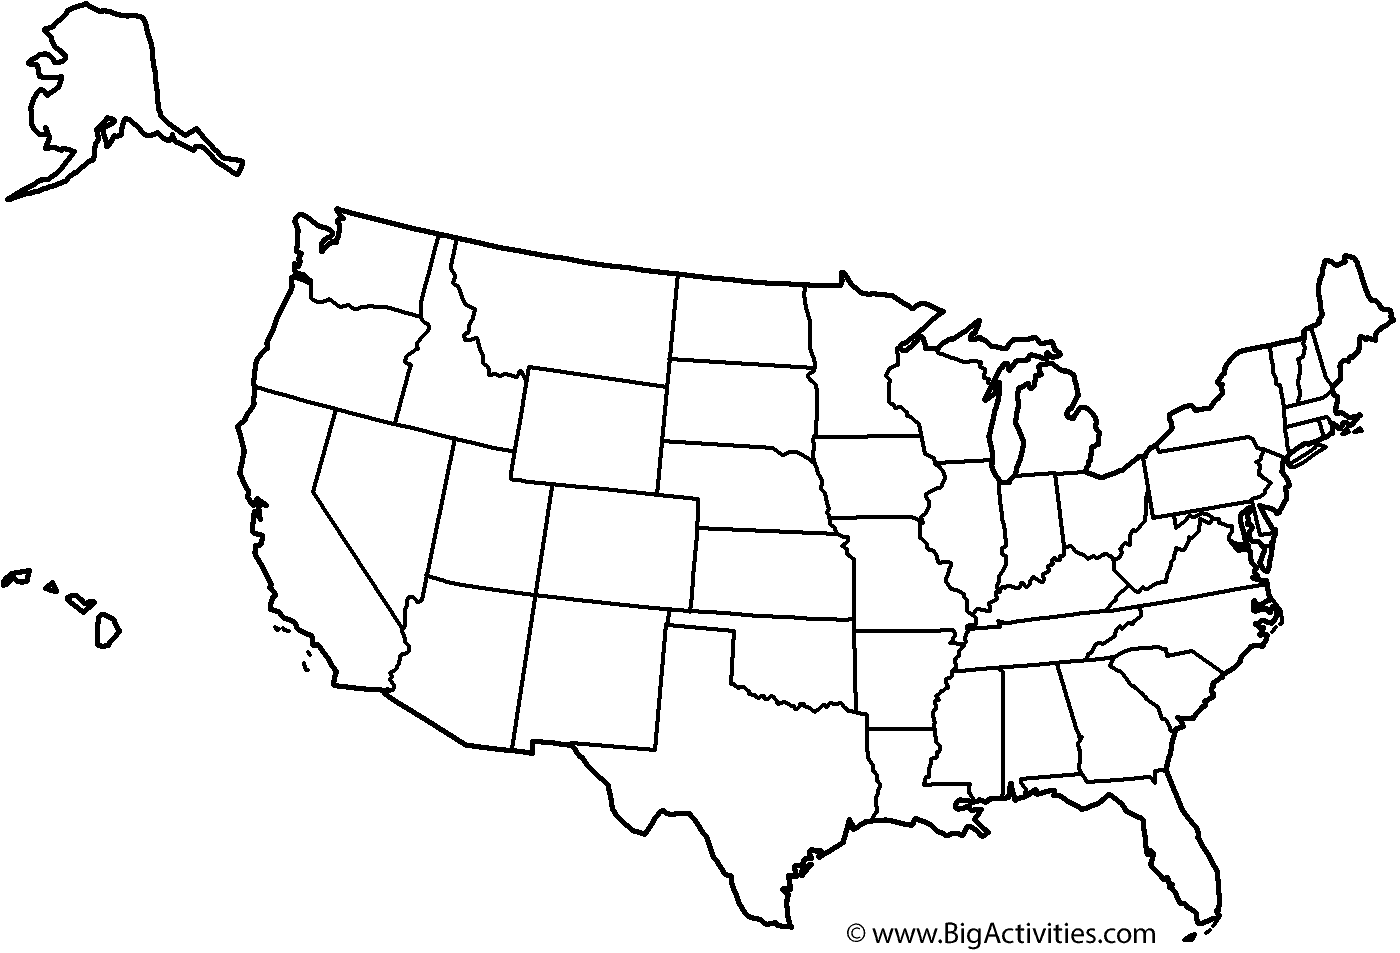 Maps Of The United States United States Black And White Outline - Us map state outlines